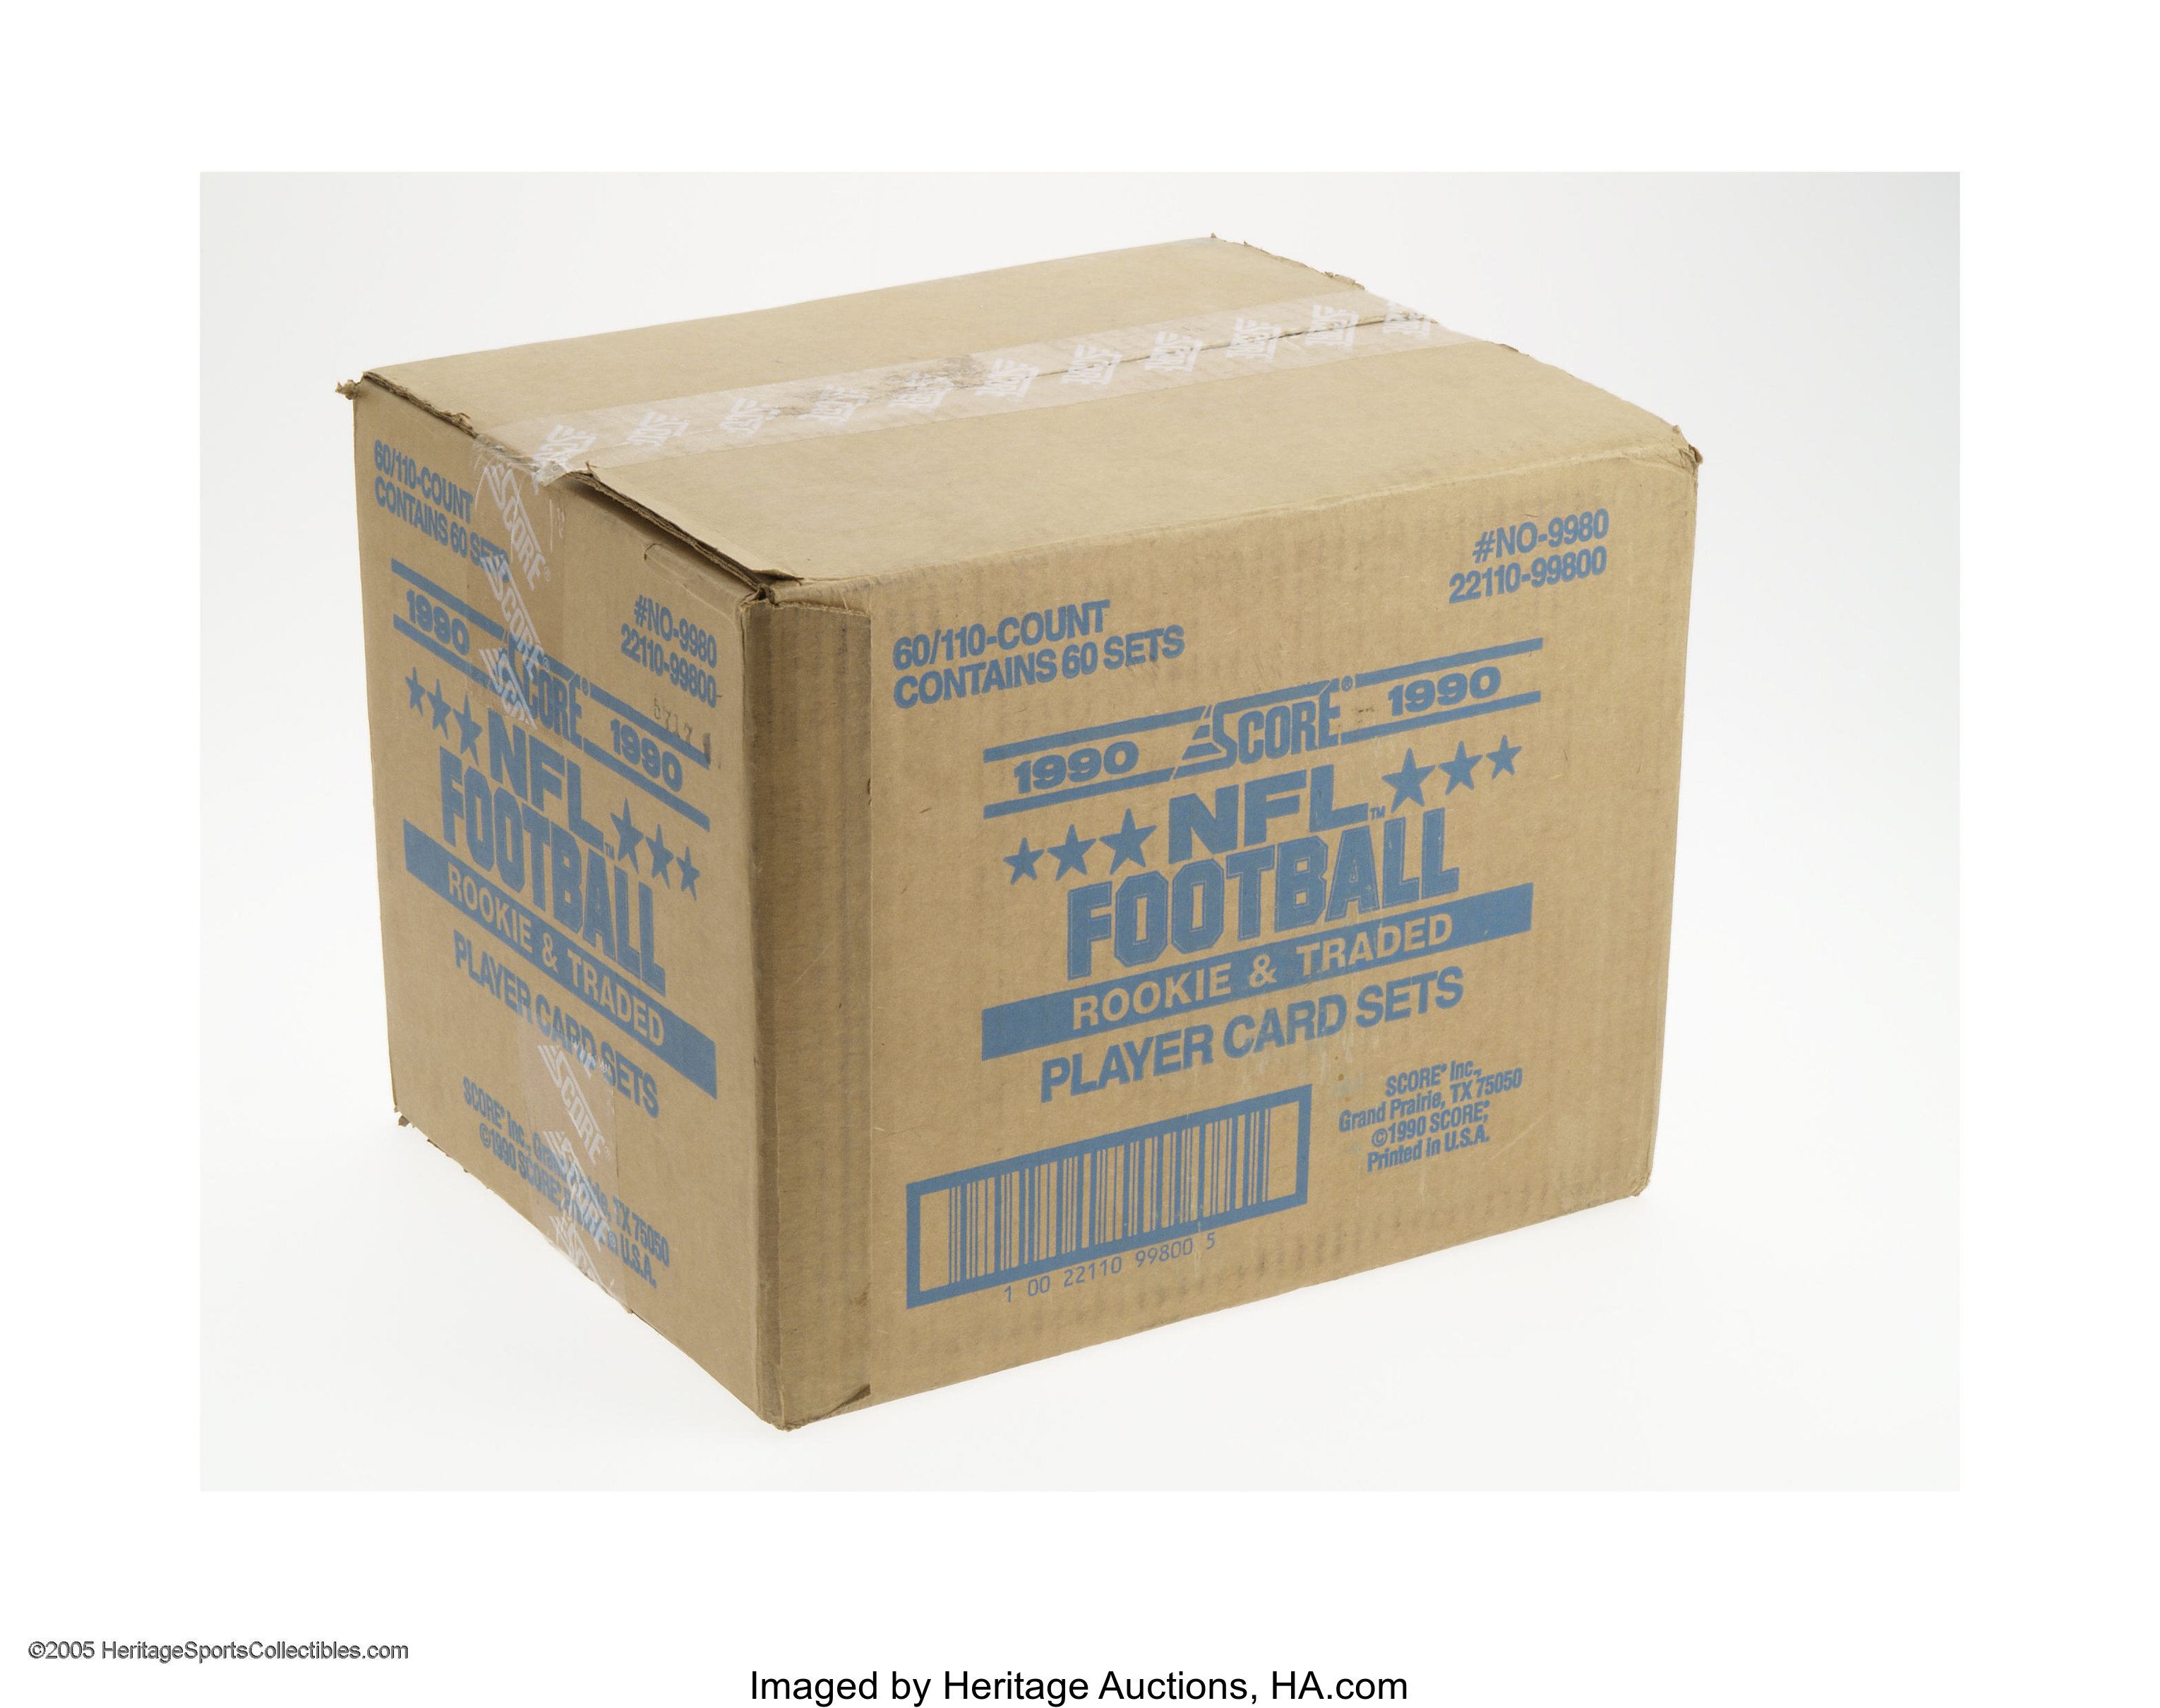 1990 Score Football Supplemental Case Of Sixty Sets With